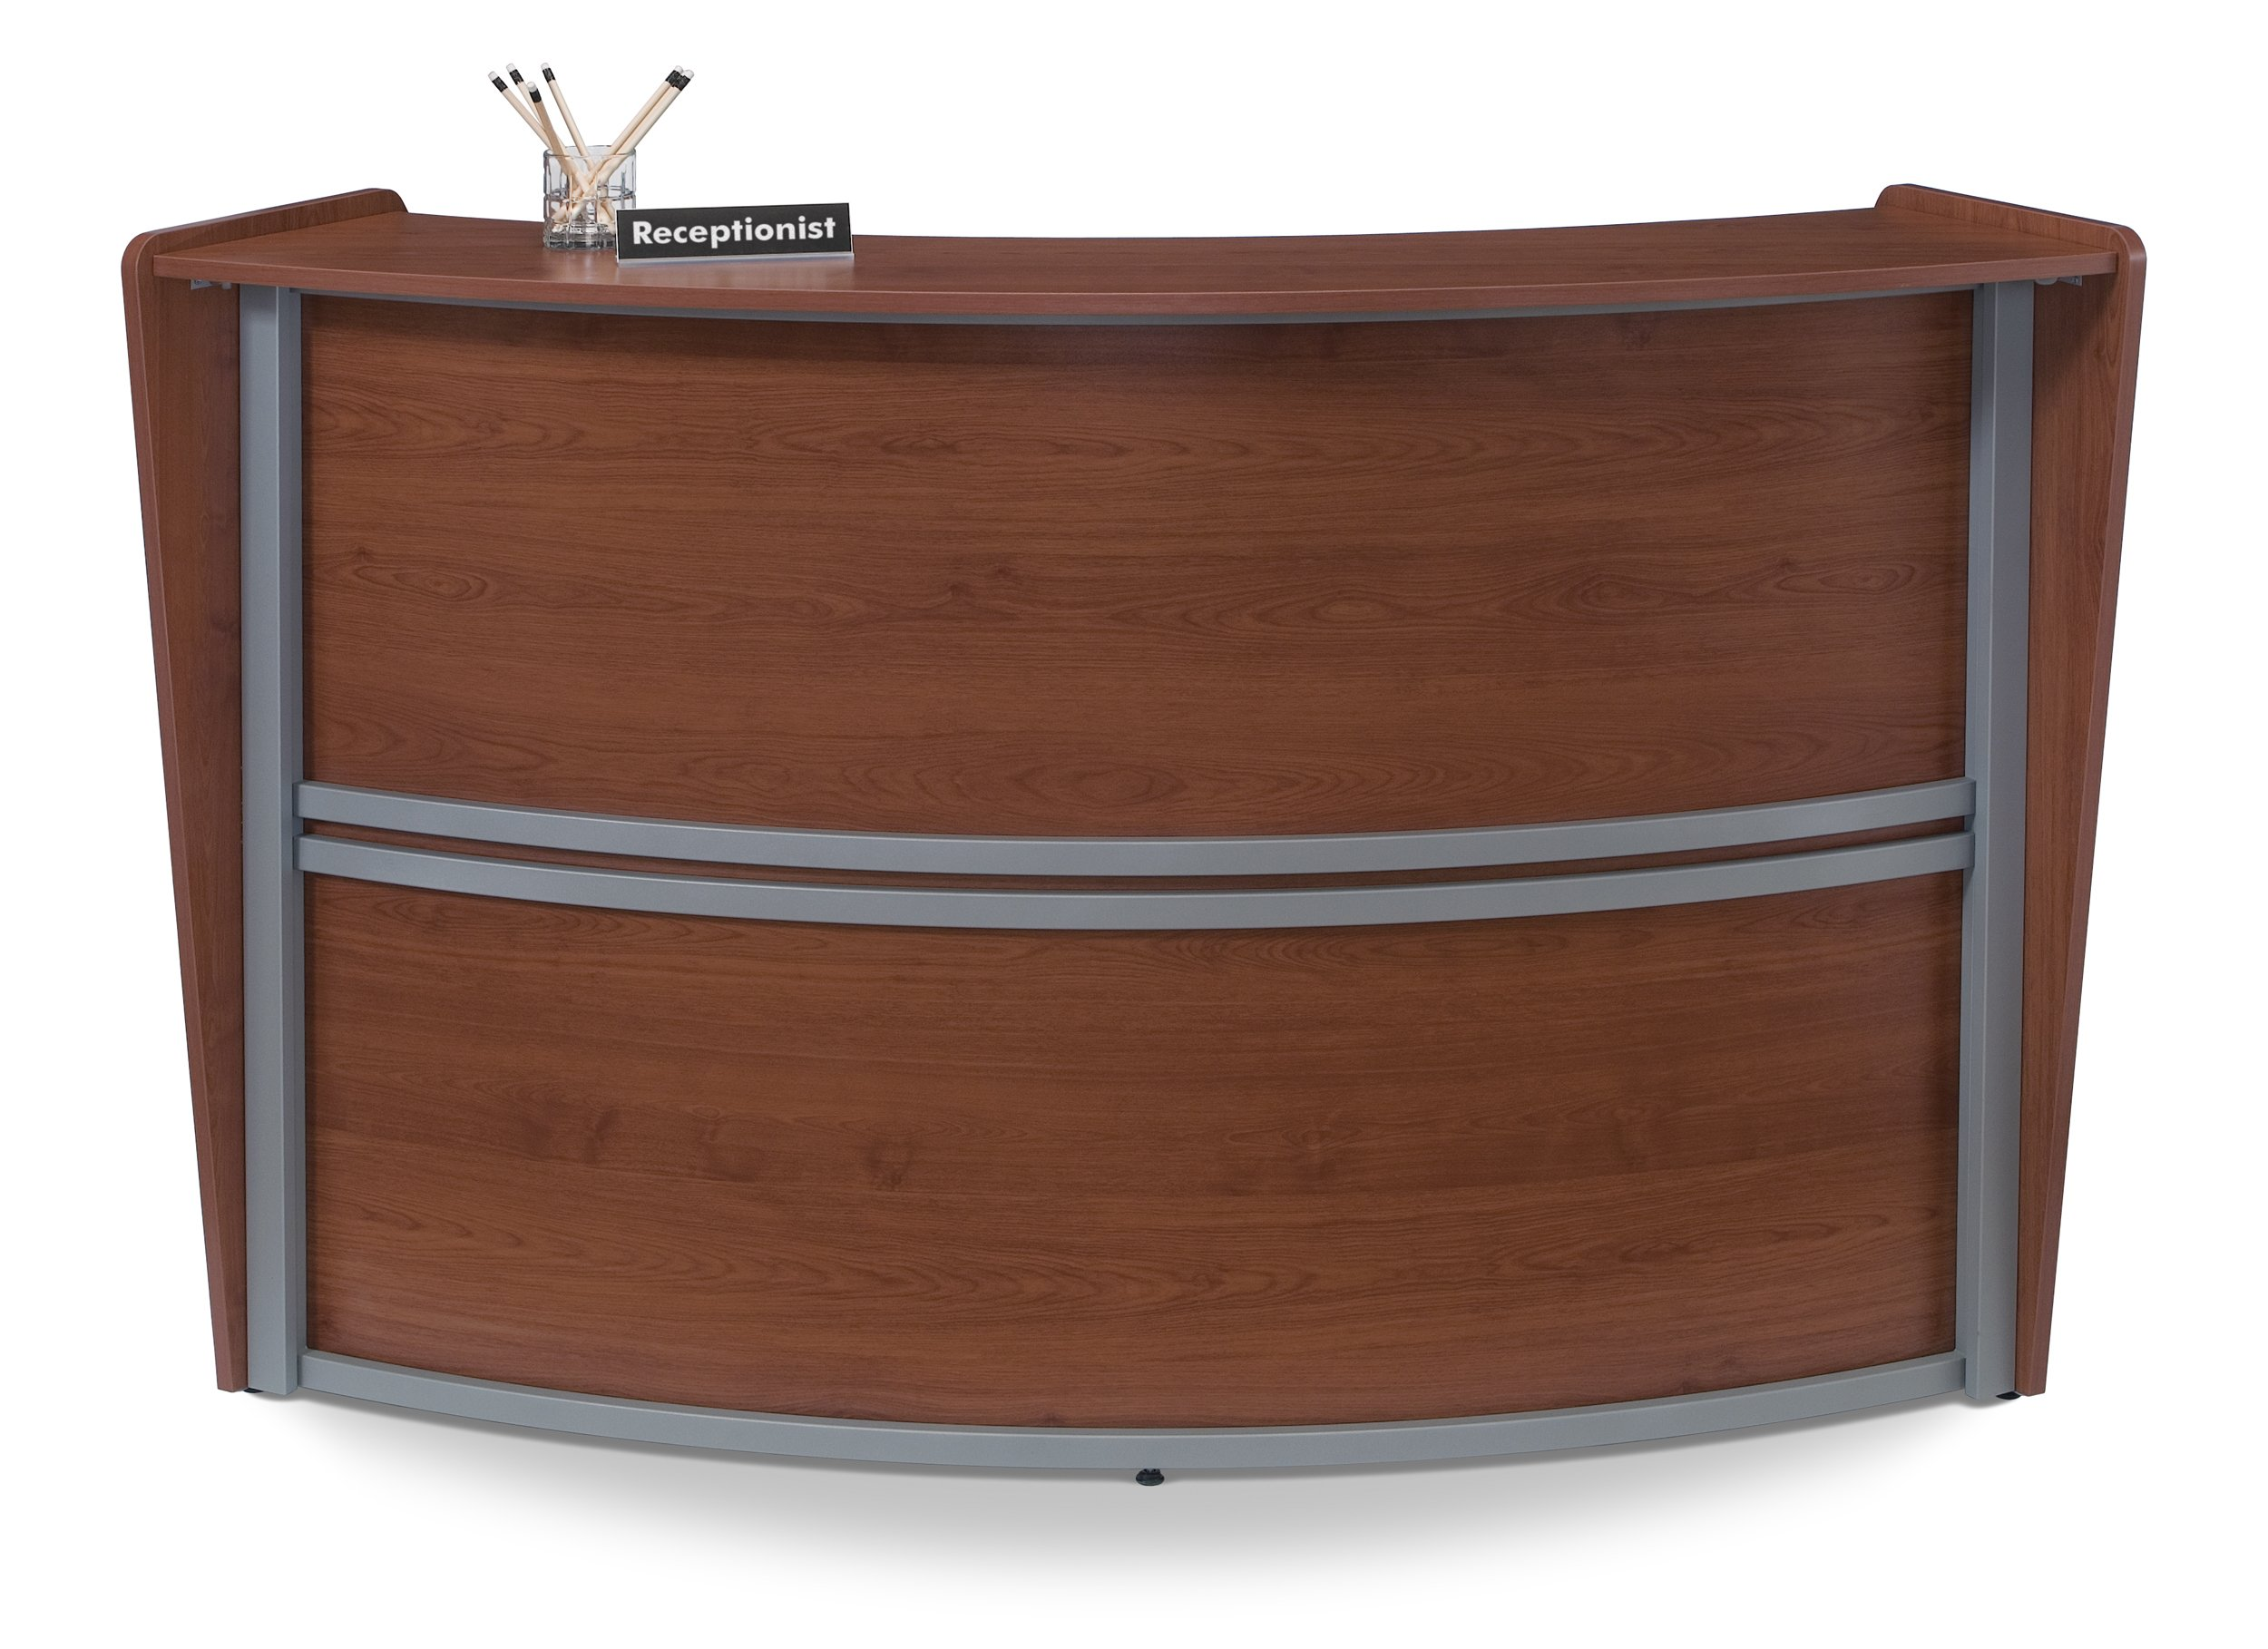 OFM Marque Series Single-Unit Curved Reception Station, Cherry